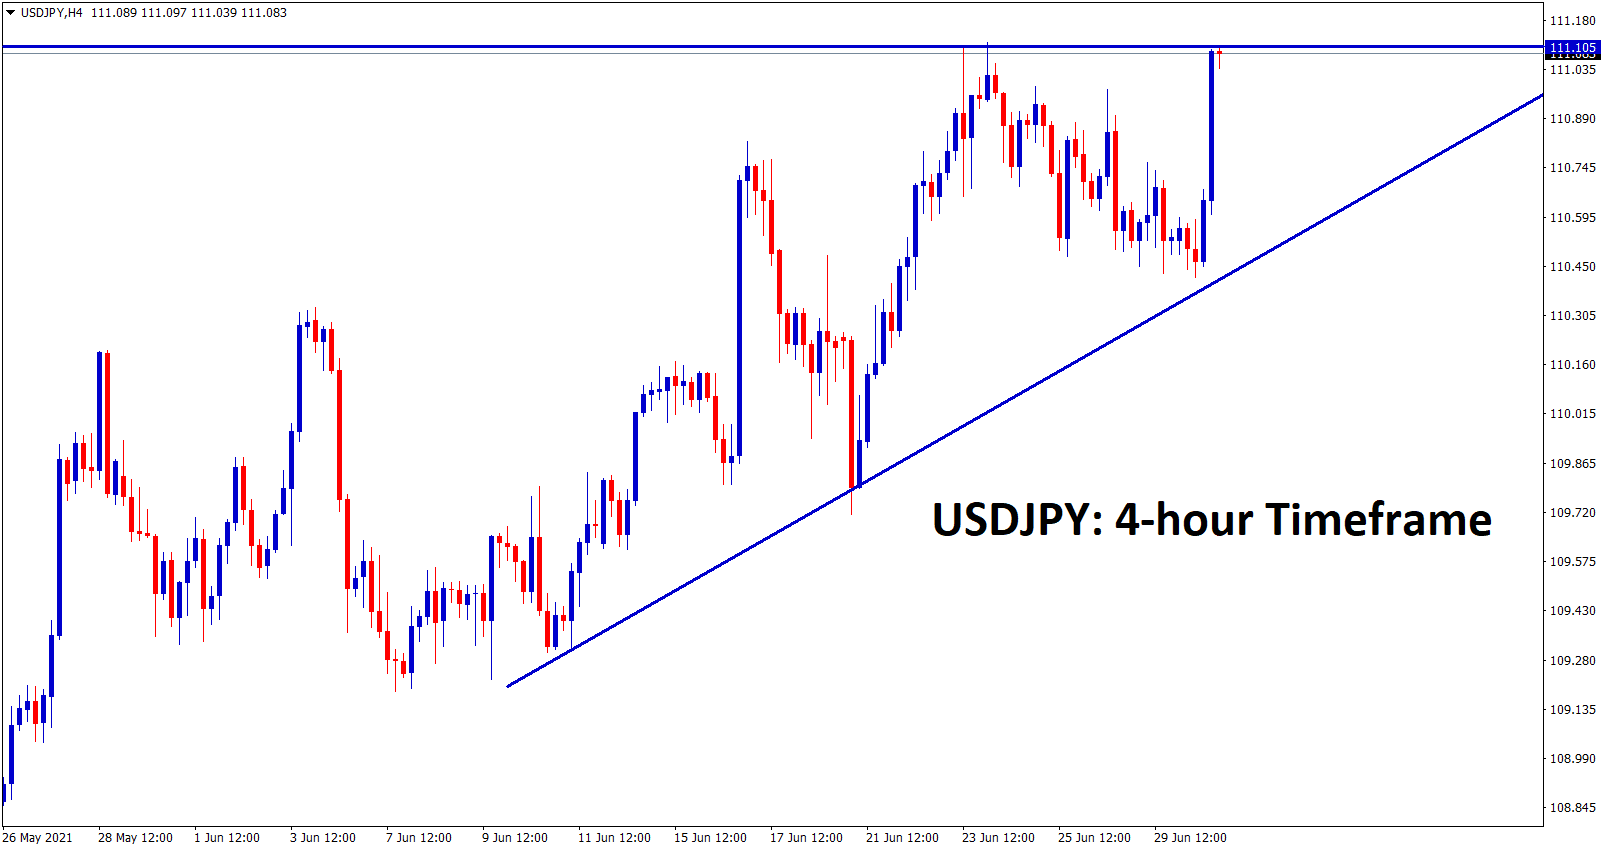 USDJPY hits the recent high again forming an Ascending Triangle